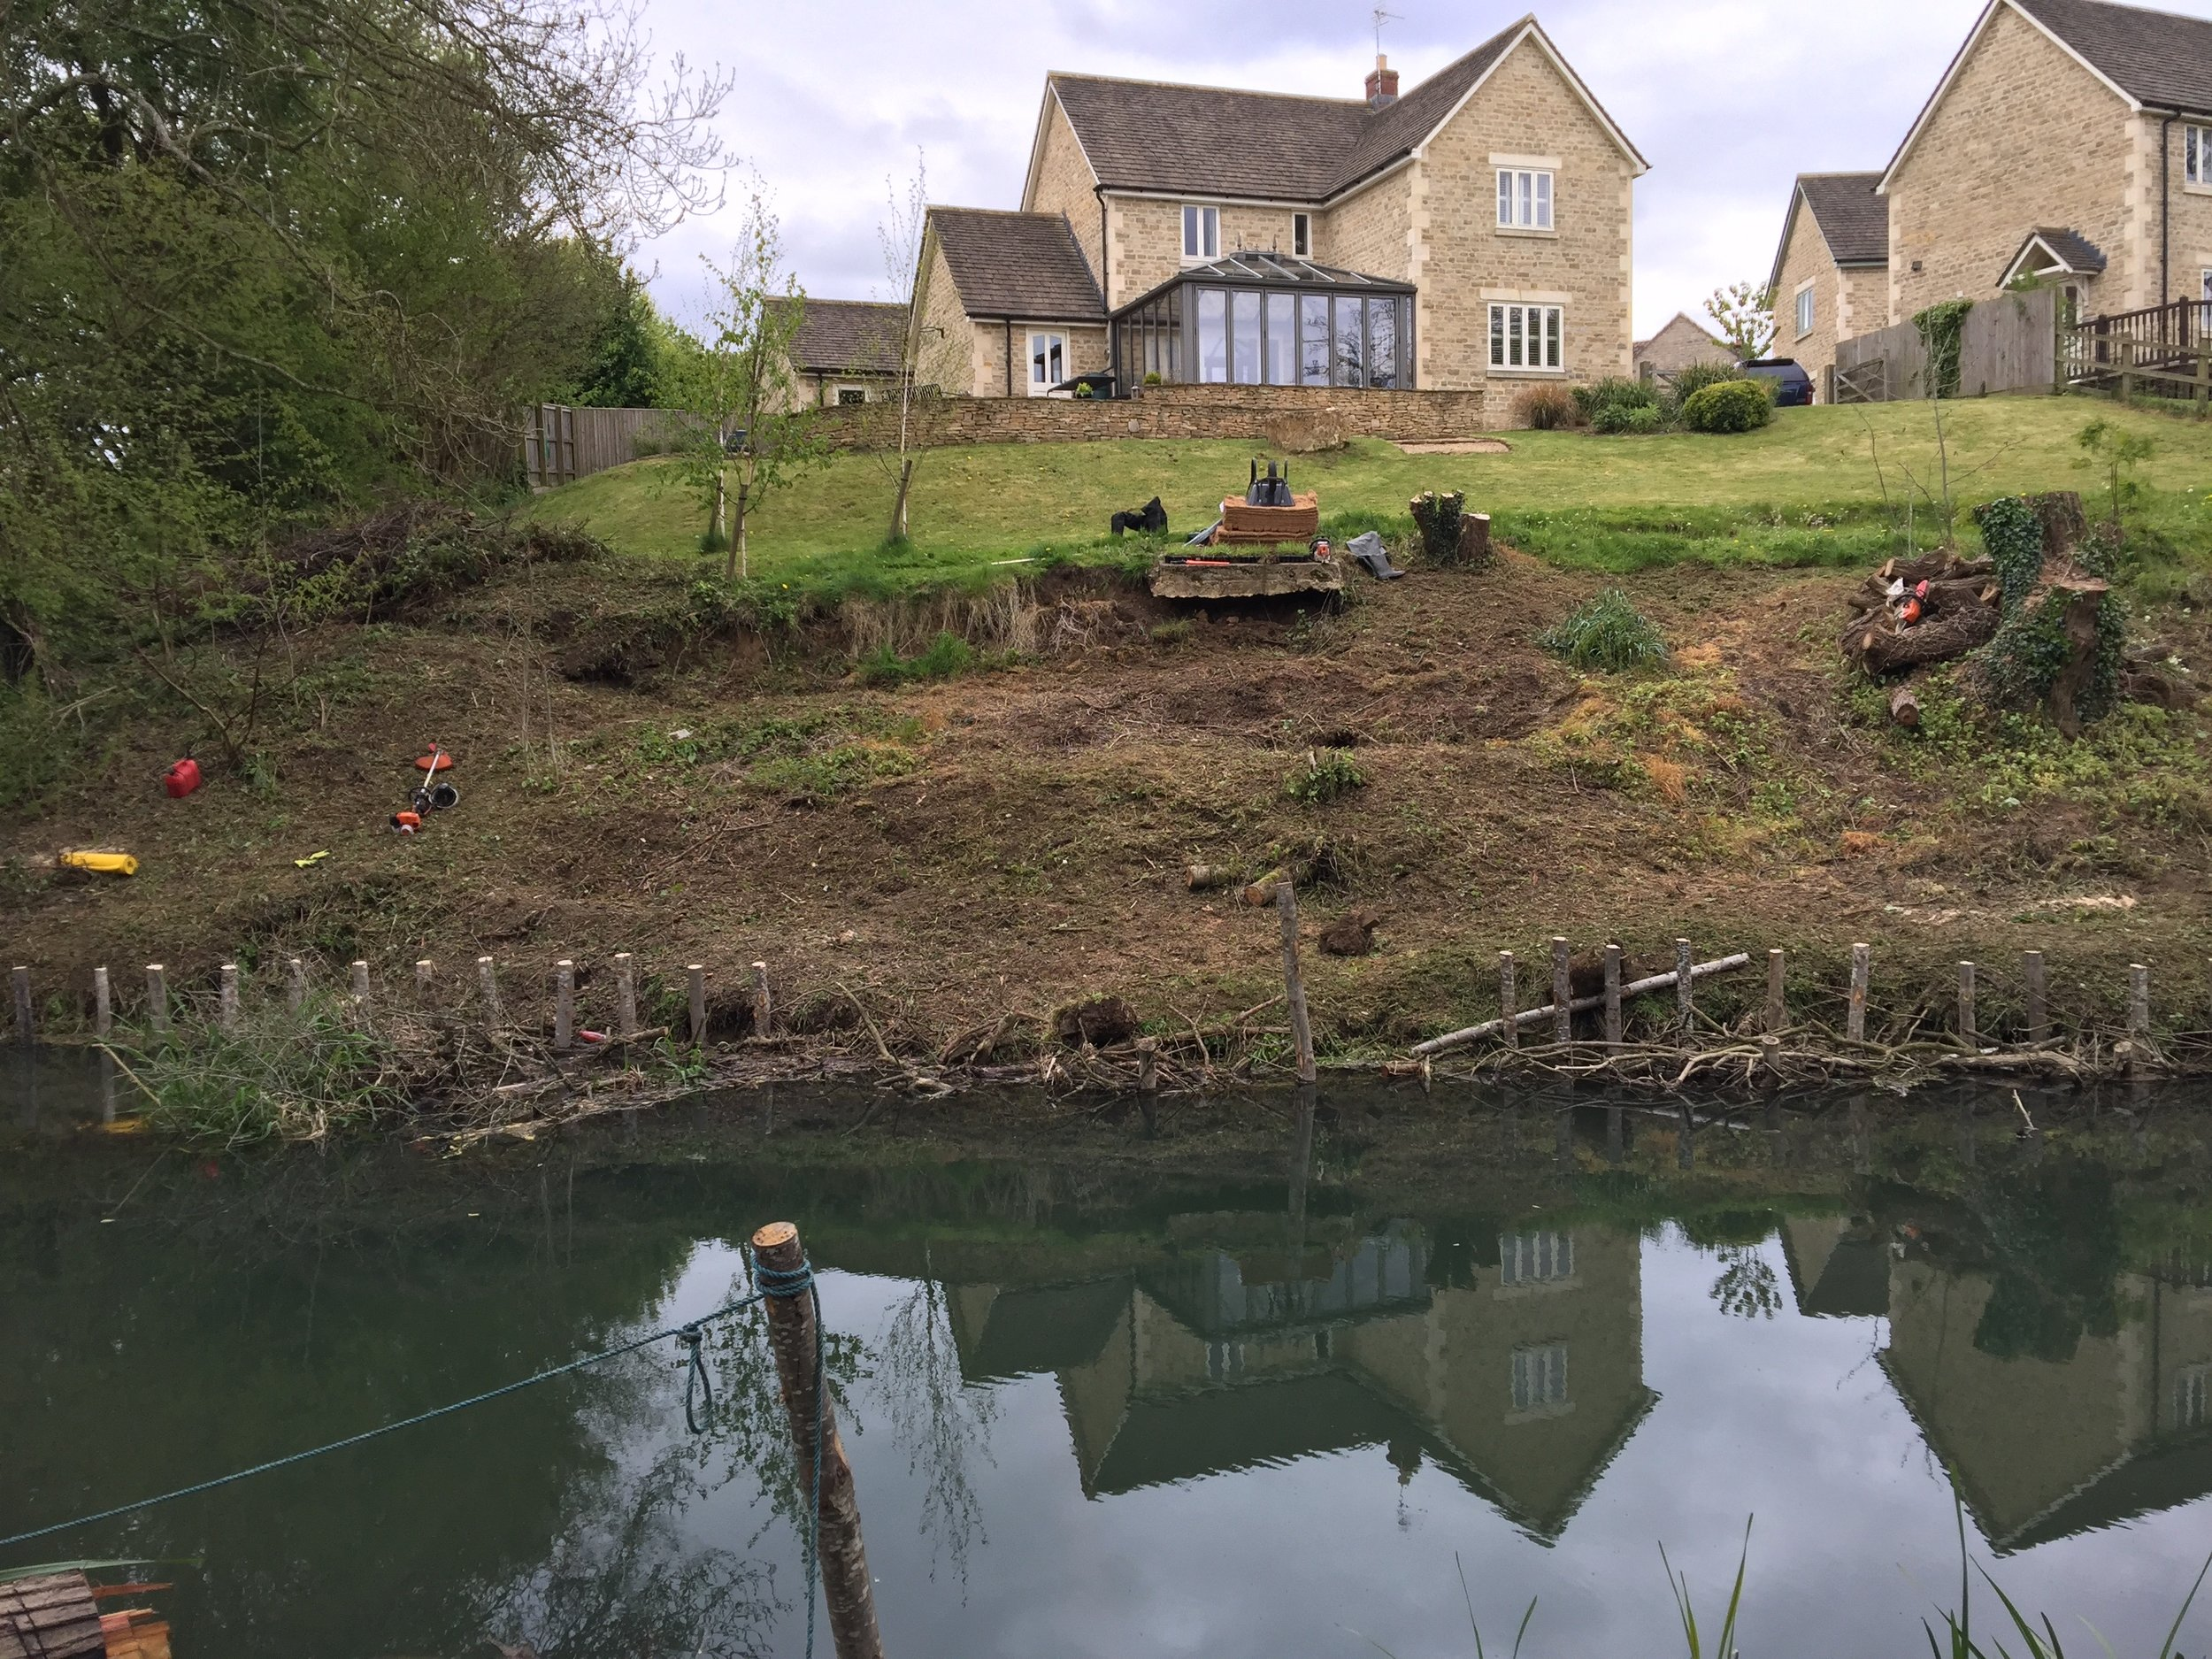 Mid works: Vegetation stripped back and live willow structure being installed at the toe of the bank.